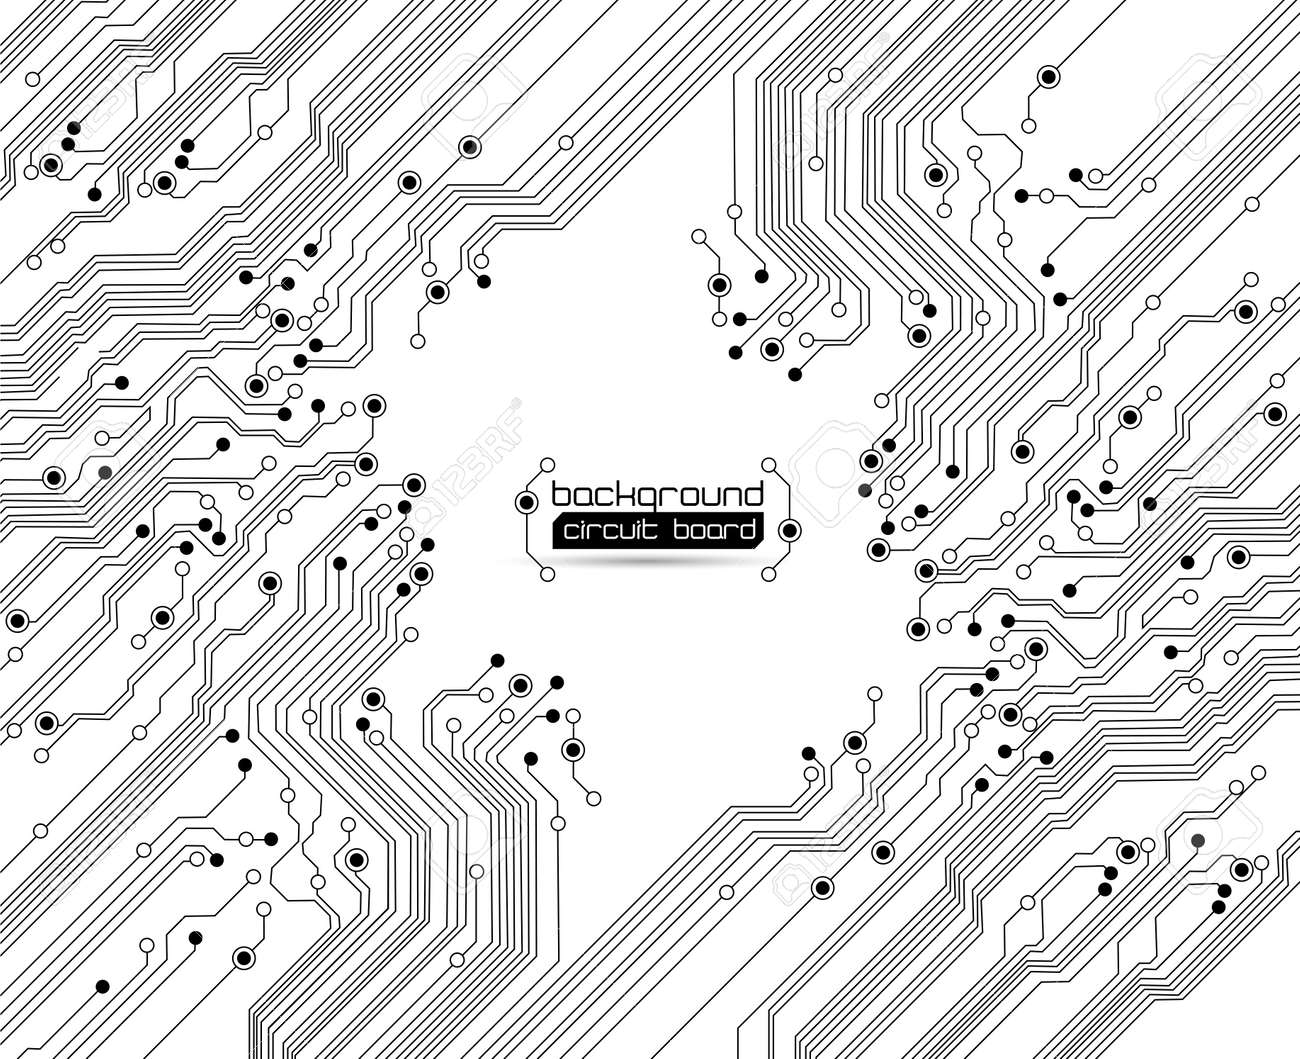 circuit board background texture - 10375246